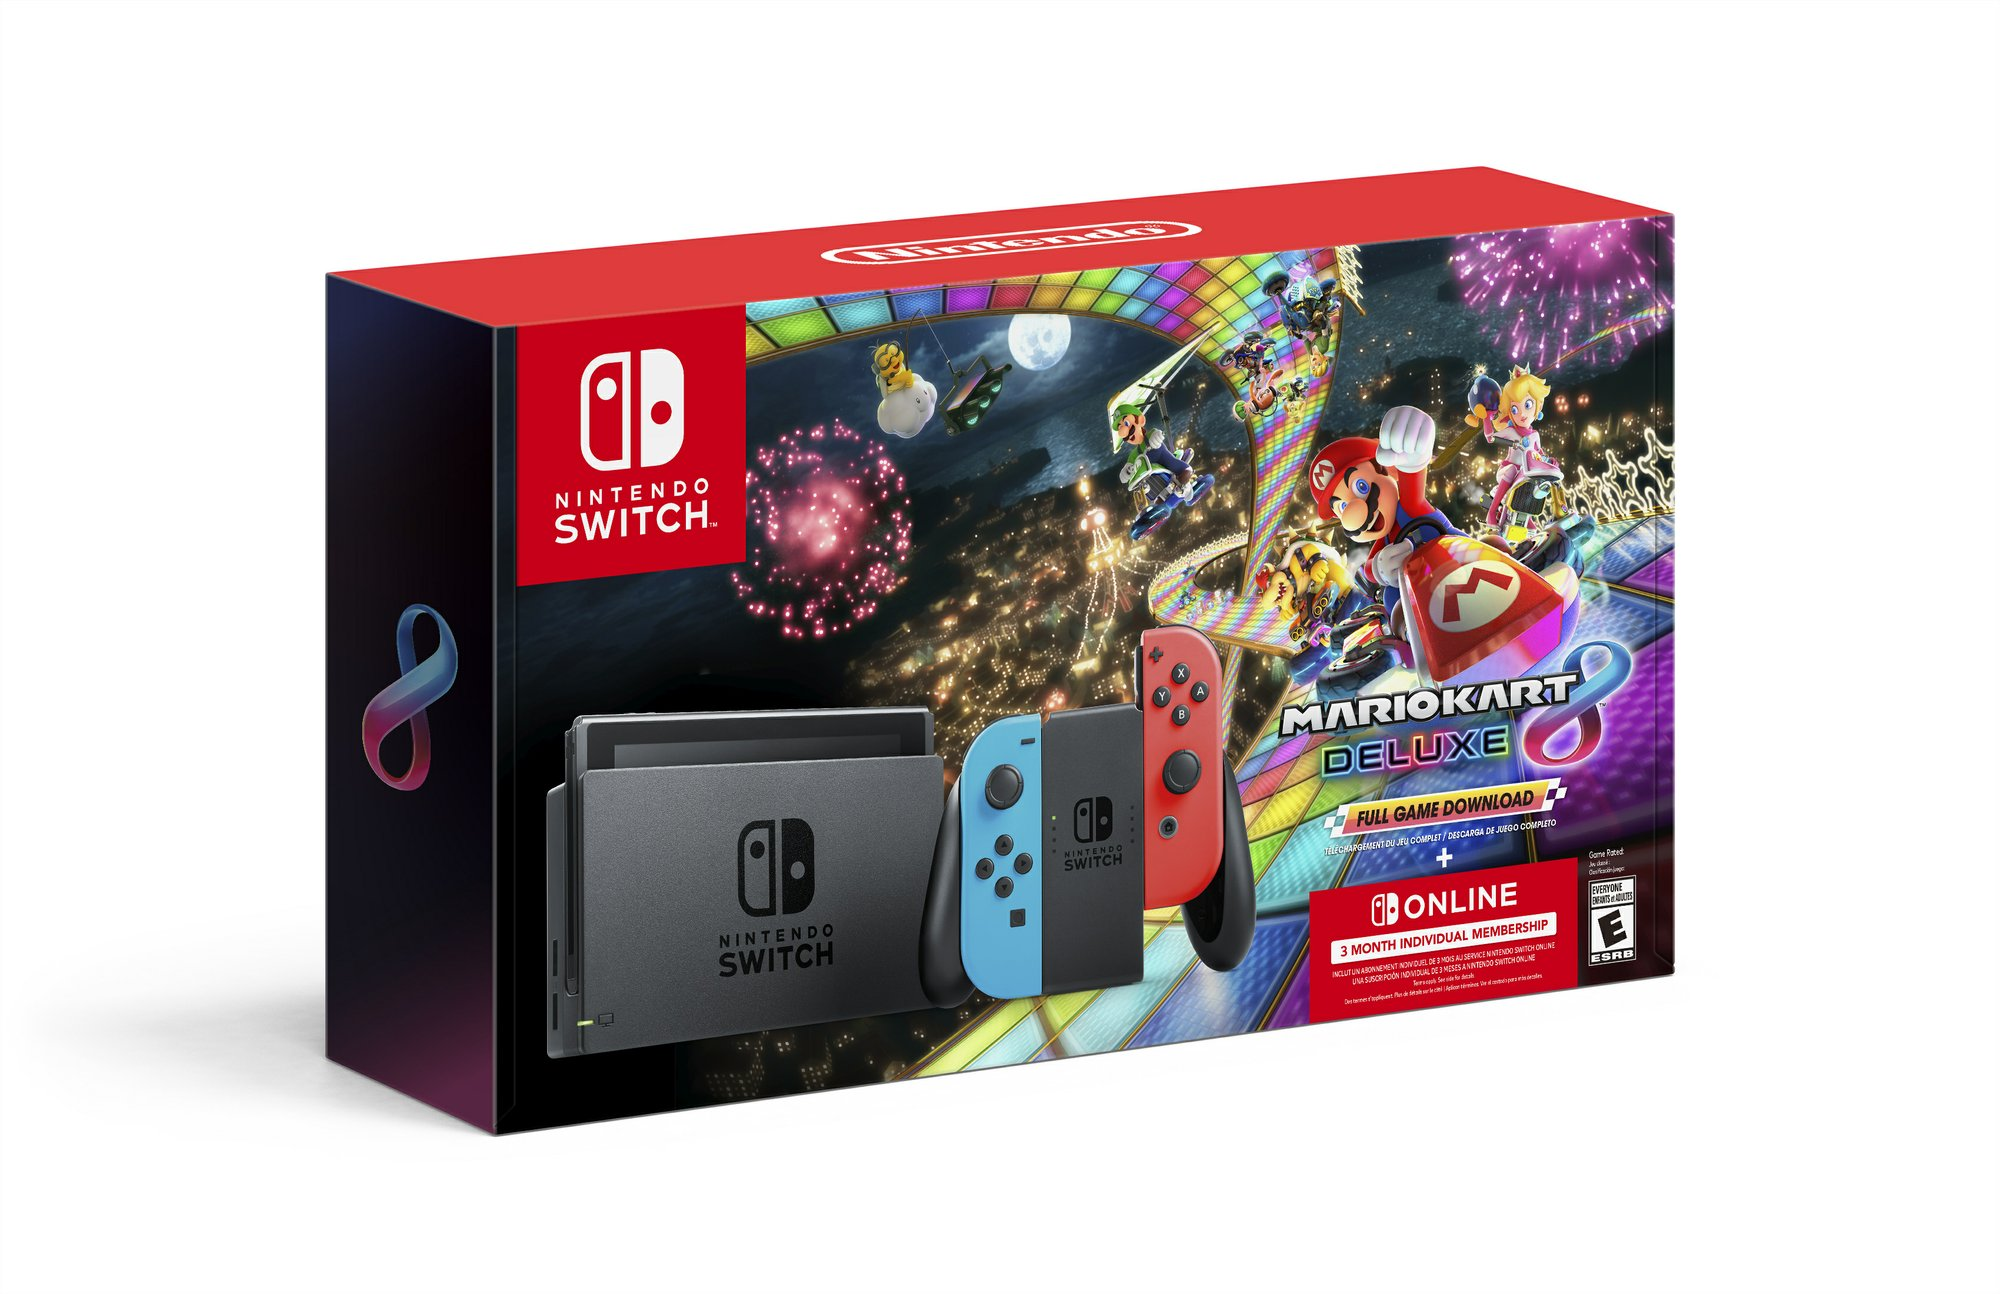 Nintendo Switch Bundle With Mario Kart 8 Deluxe And Nintendo Switch Online Membership Delivers A Black Friday Boost